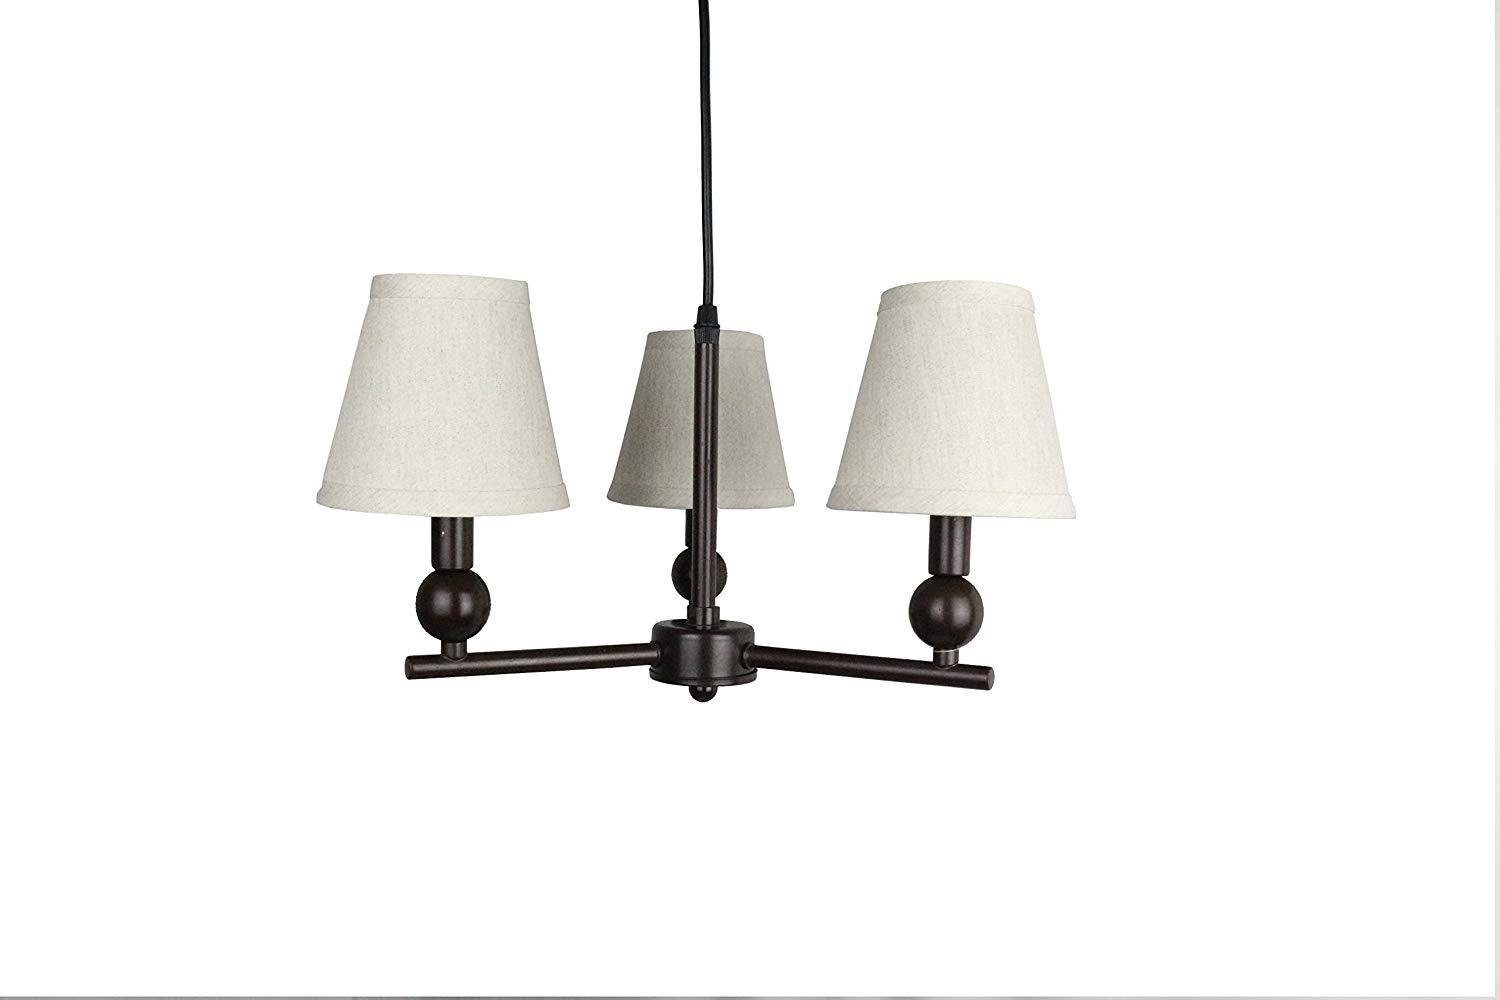 Urbanest Portable Zio 3-Light Chandelier with Oatmeal Linen Shades